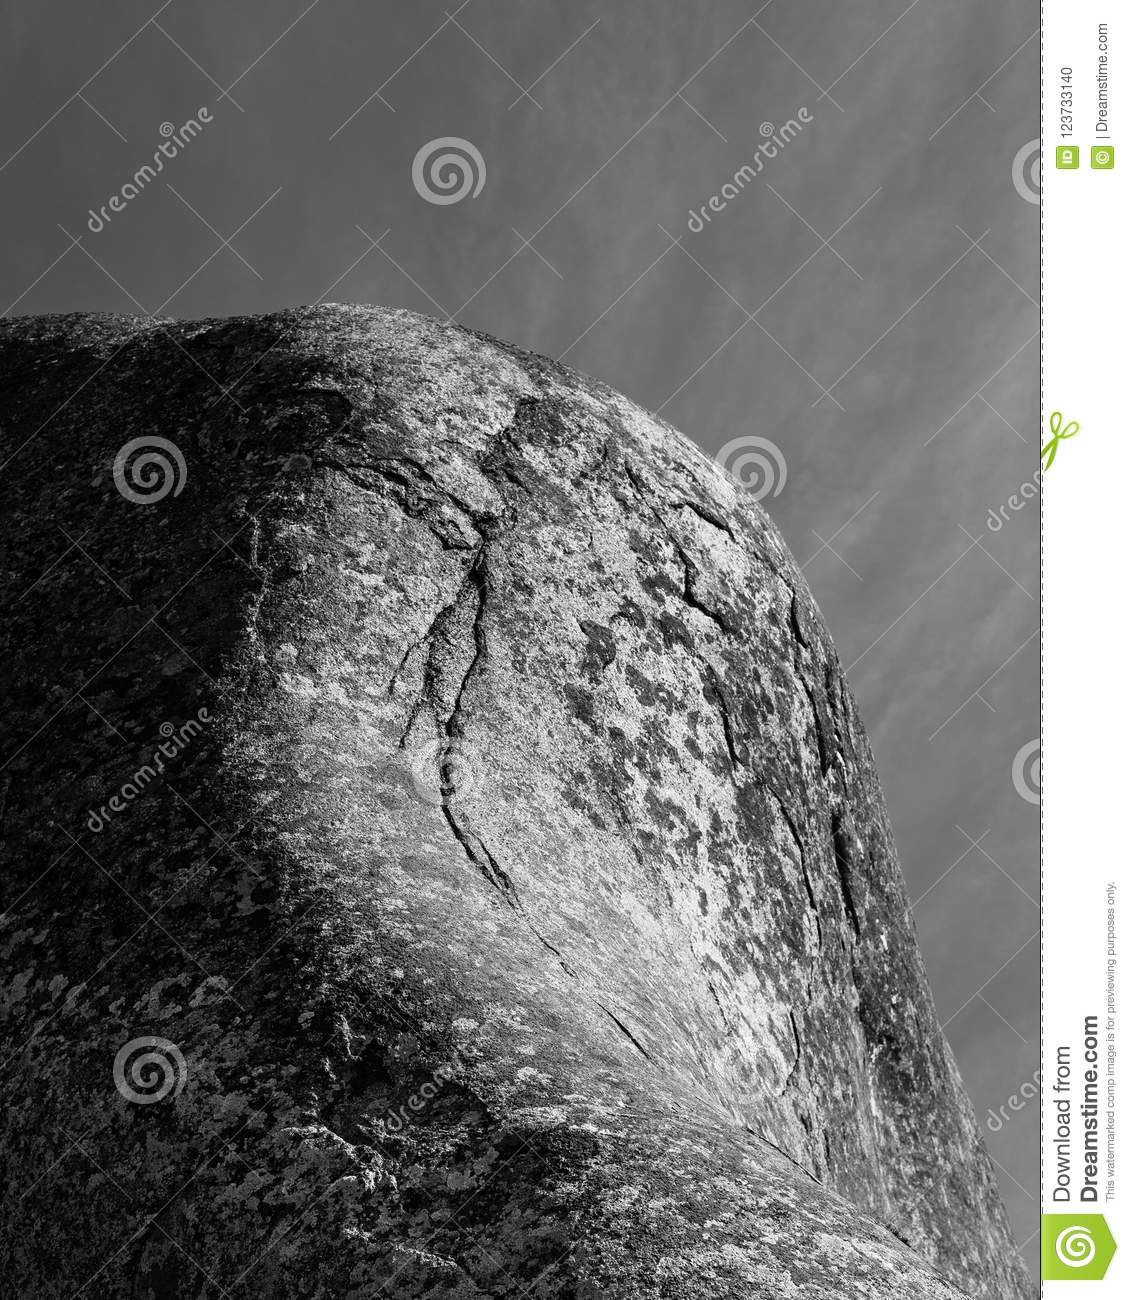 Fine Art Natural Abstract Rock Formation Stock Photo Image